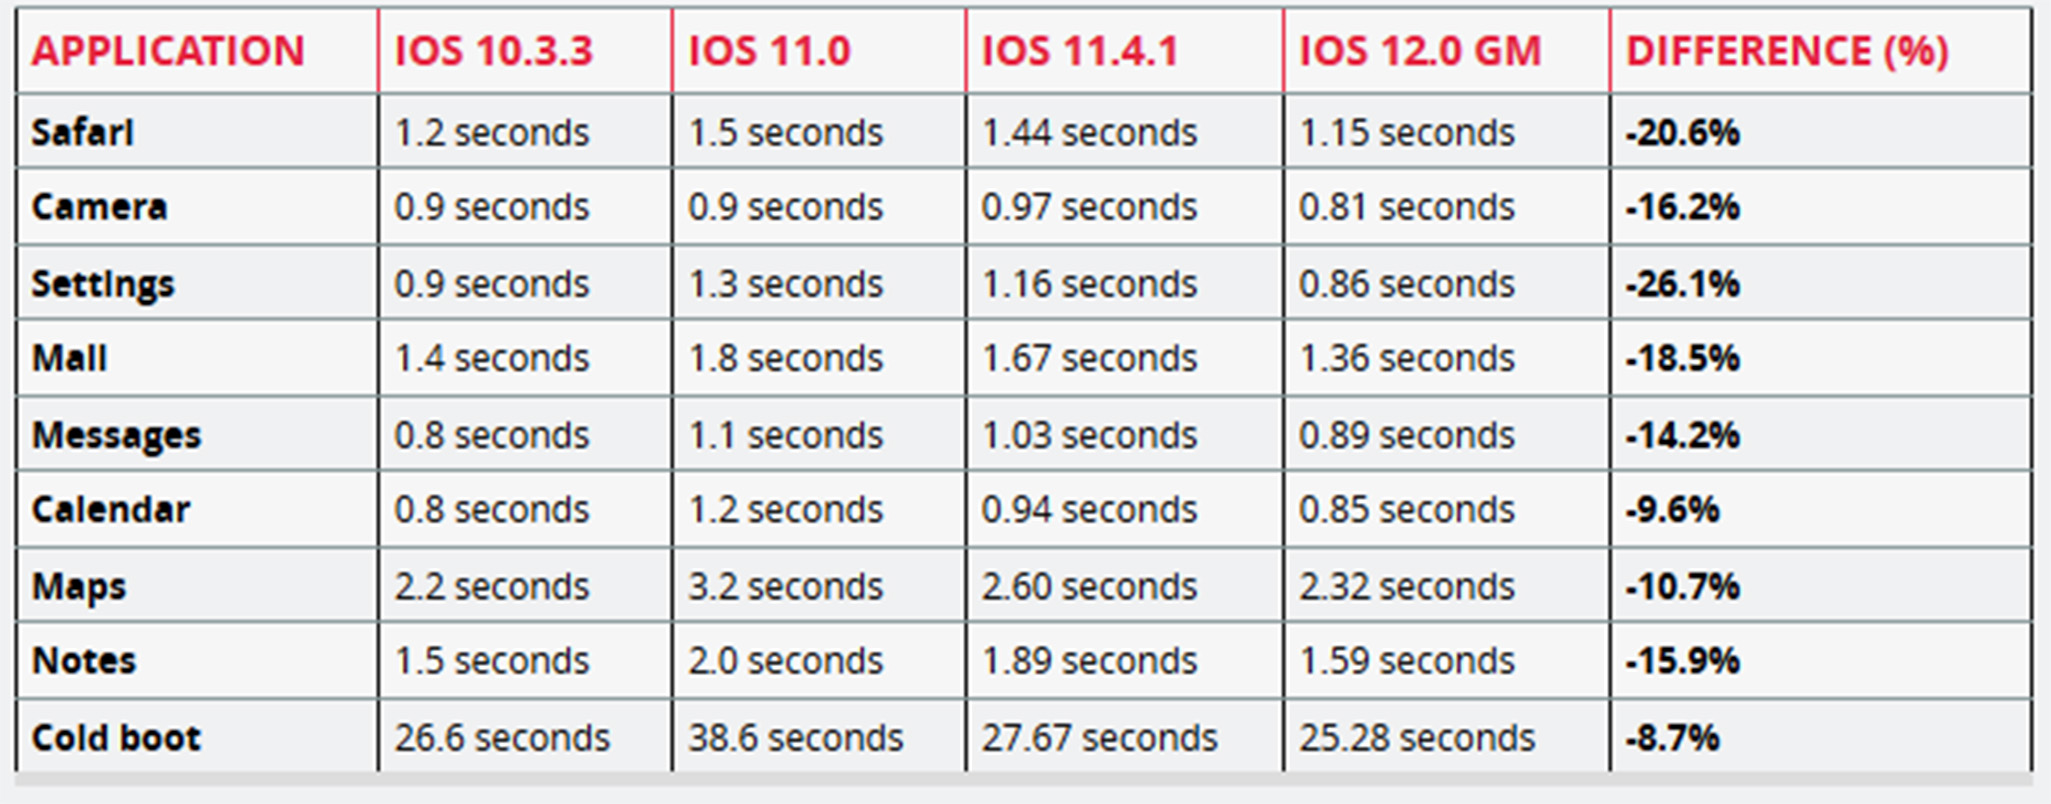 iPhone 5S test results